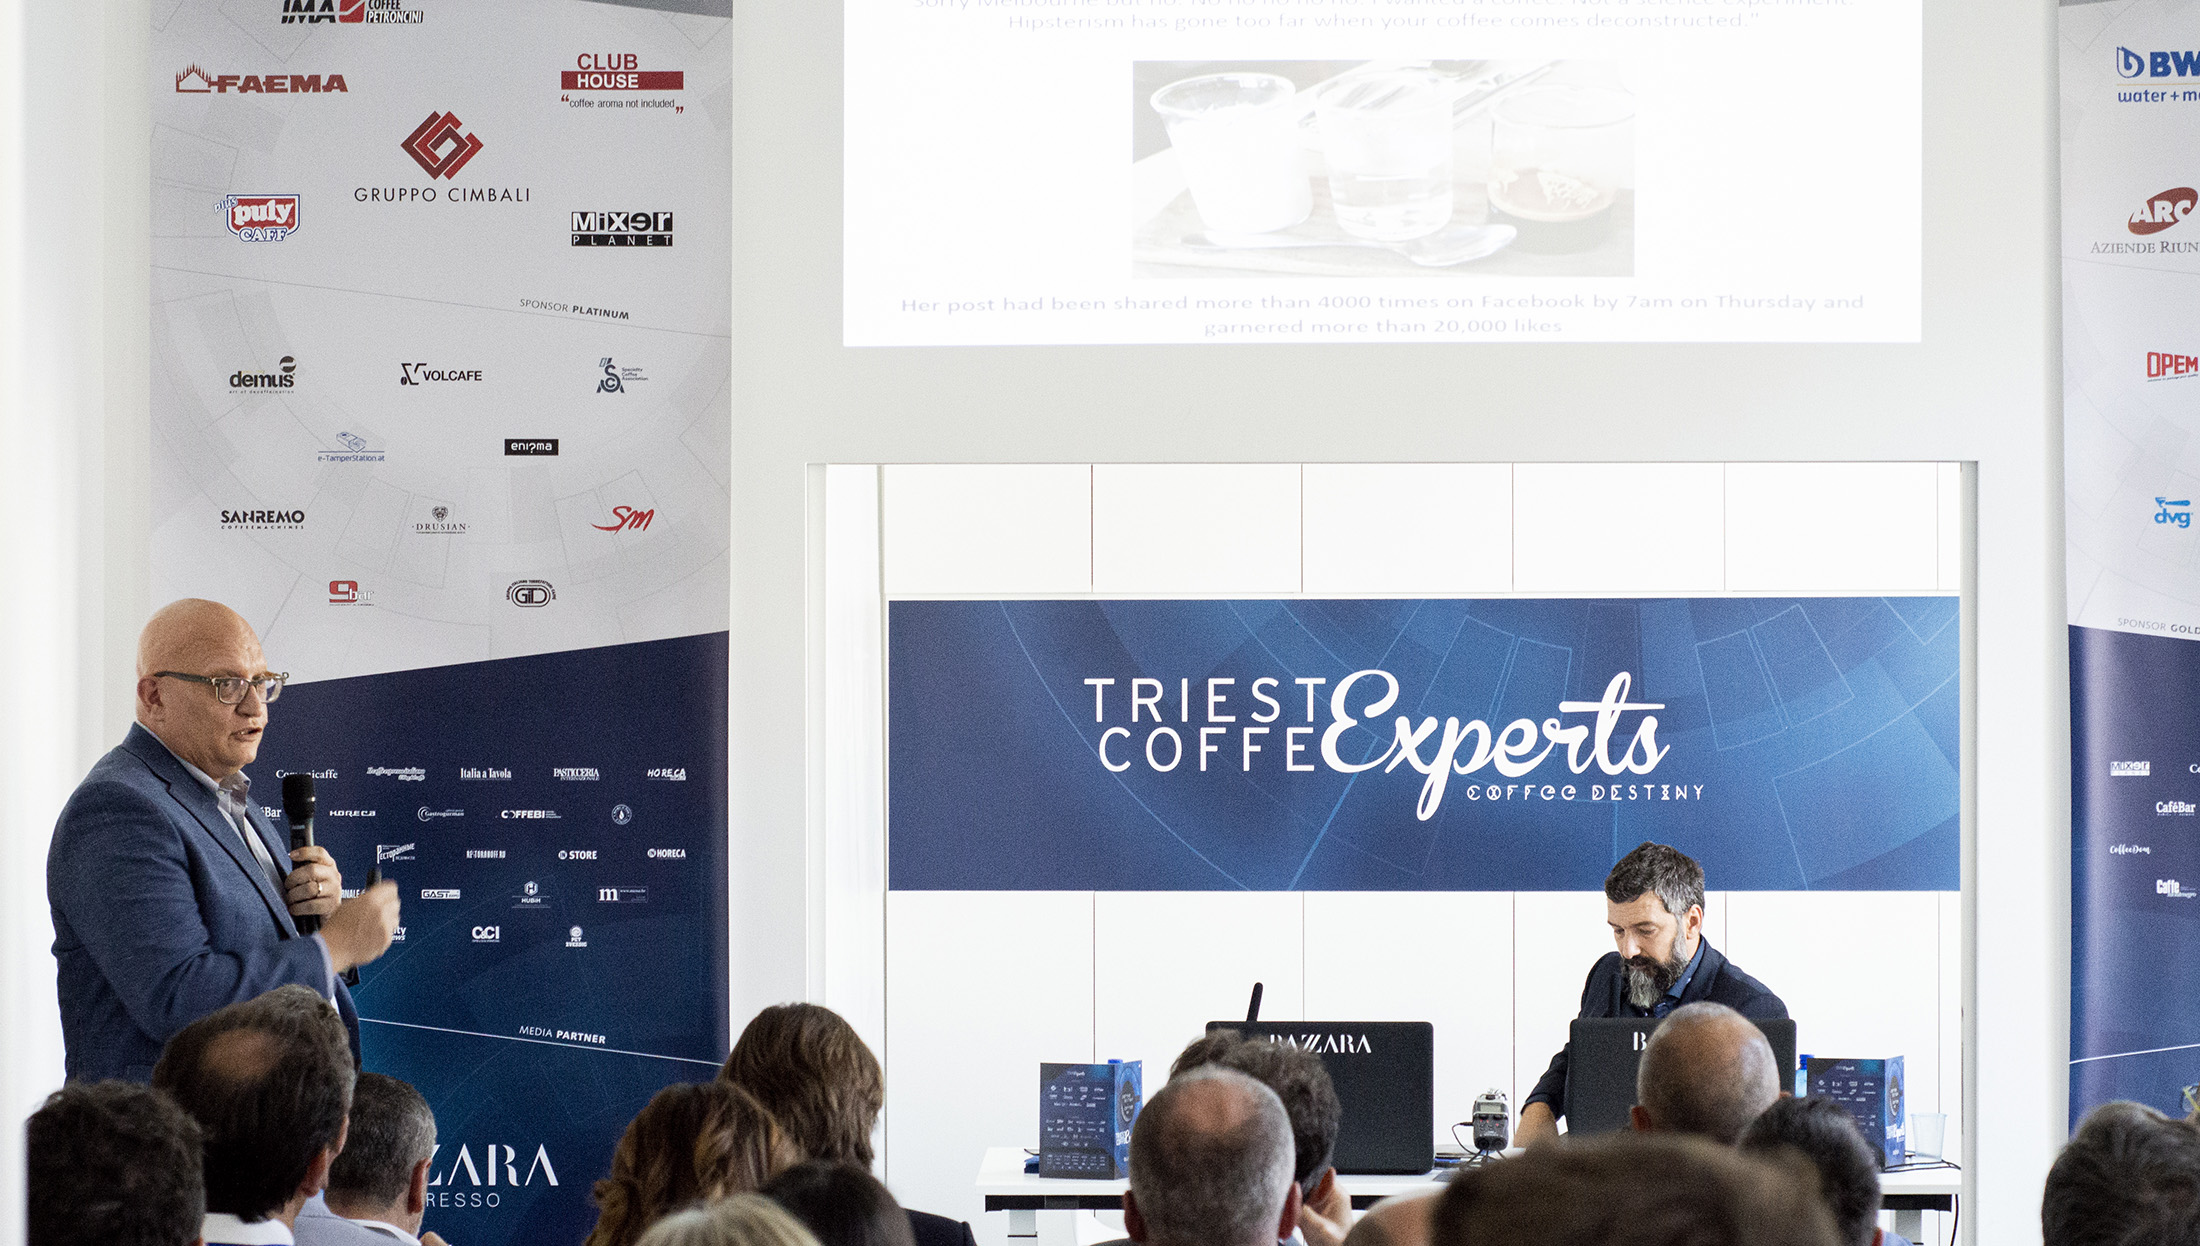 Cosimo Libardo, Trieste Coffee Experts